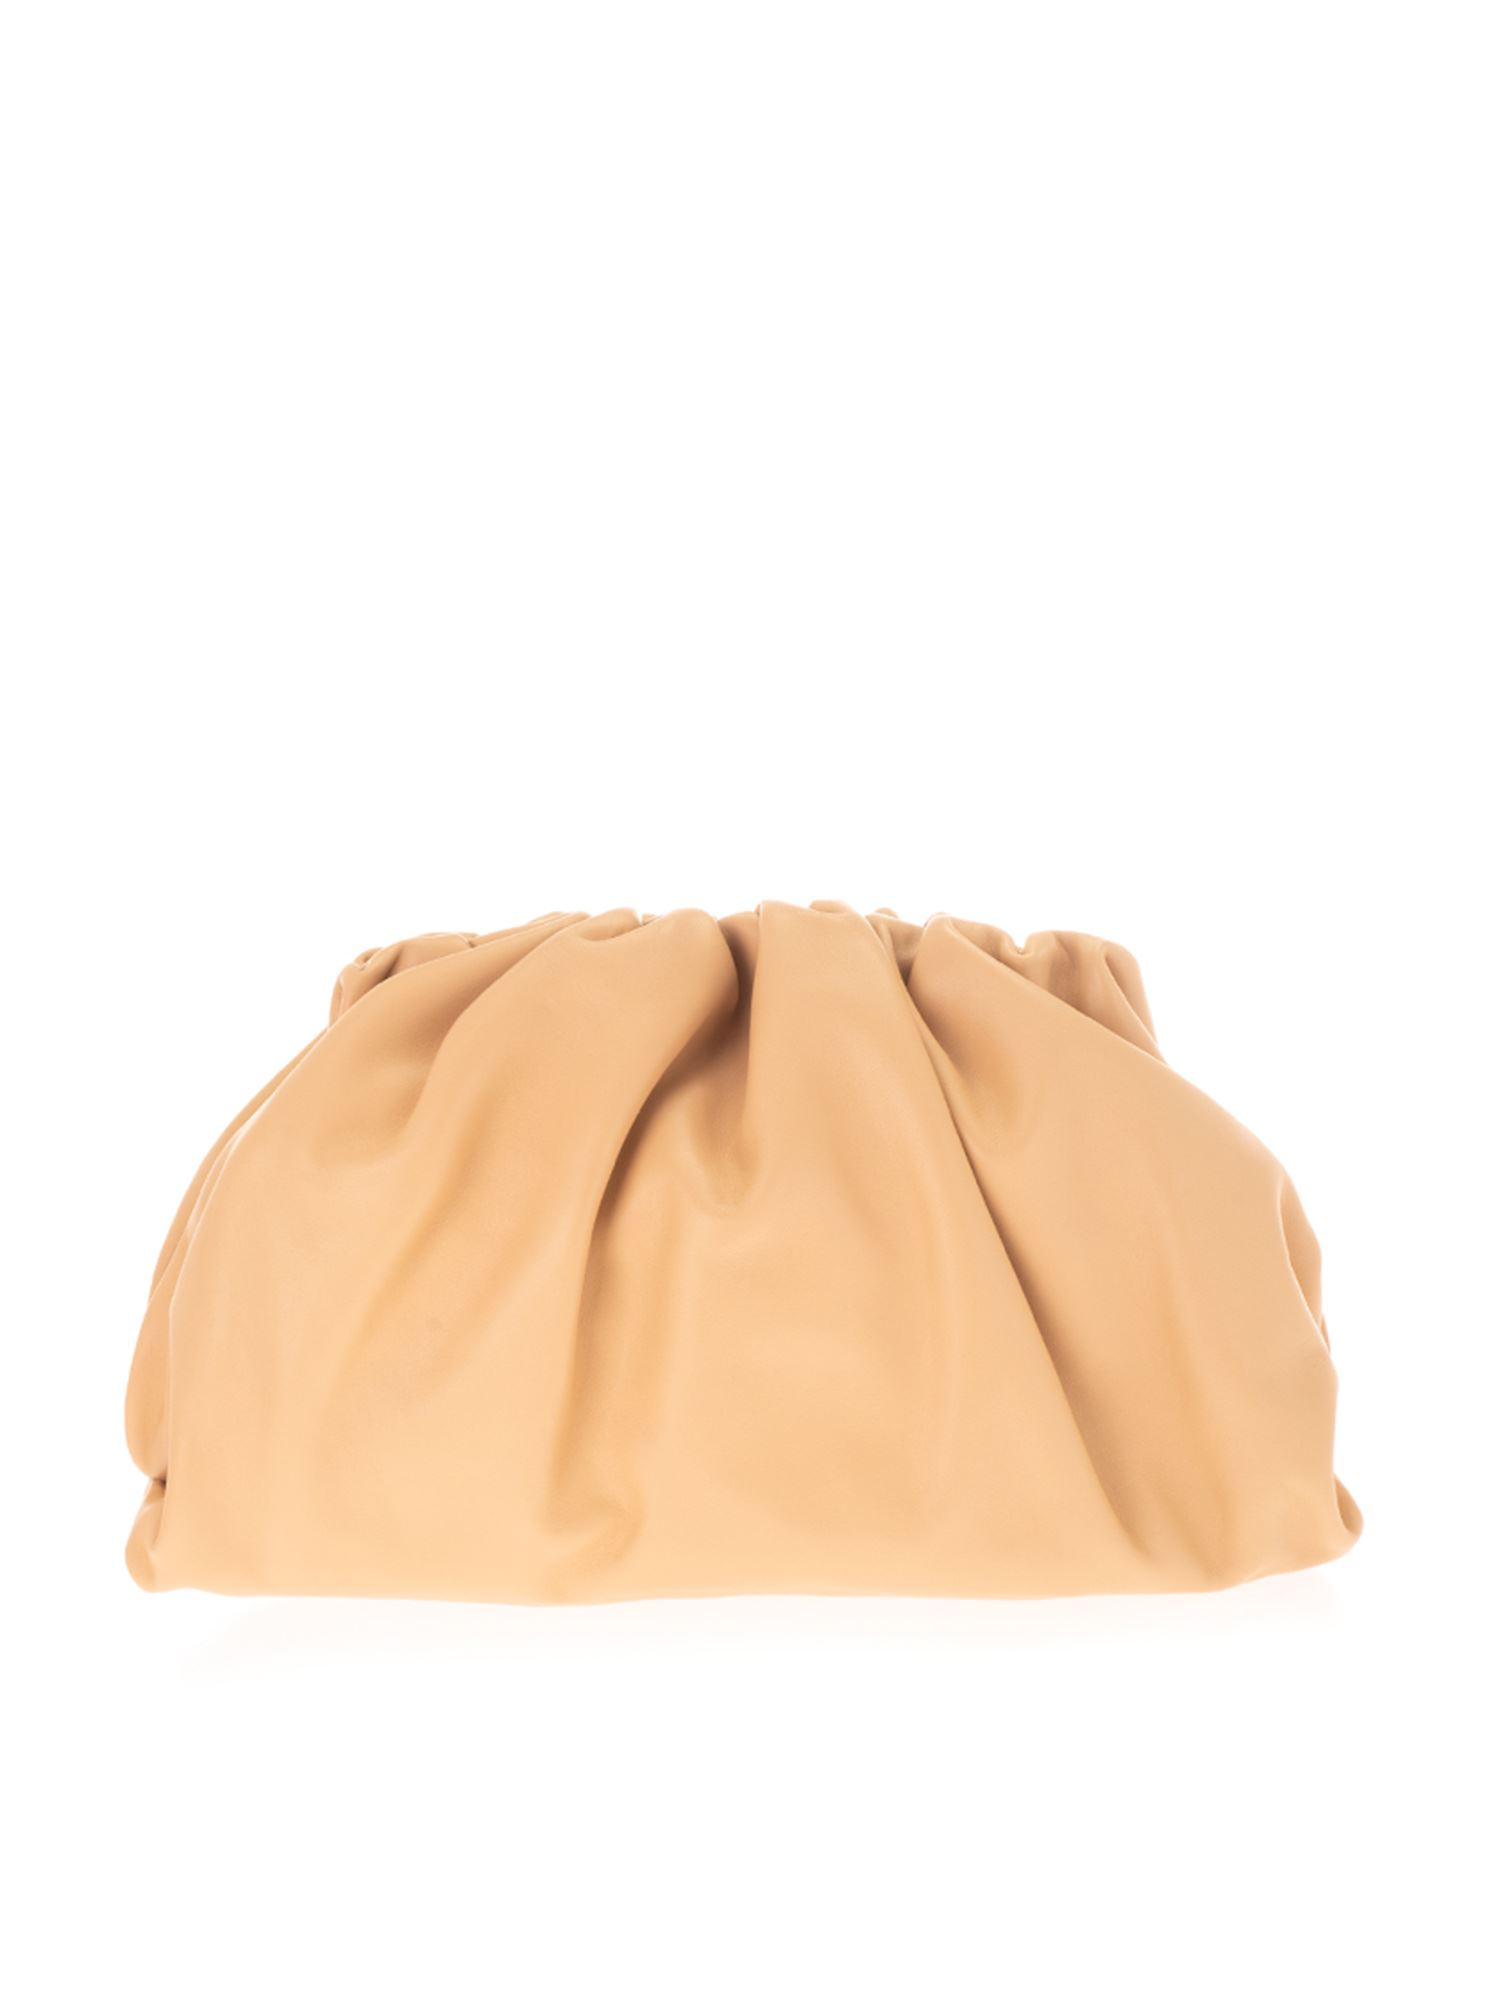 Bottega Veneta THE POUCH CLUTCH IN ALMOND GOLD